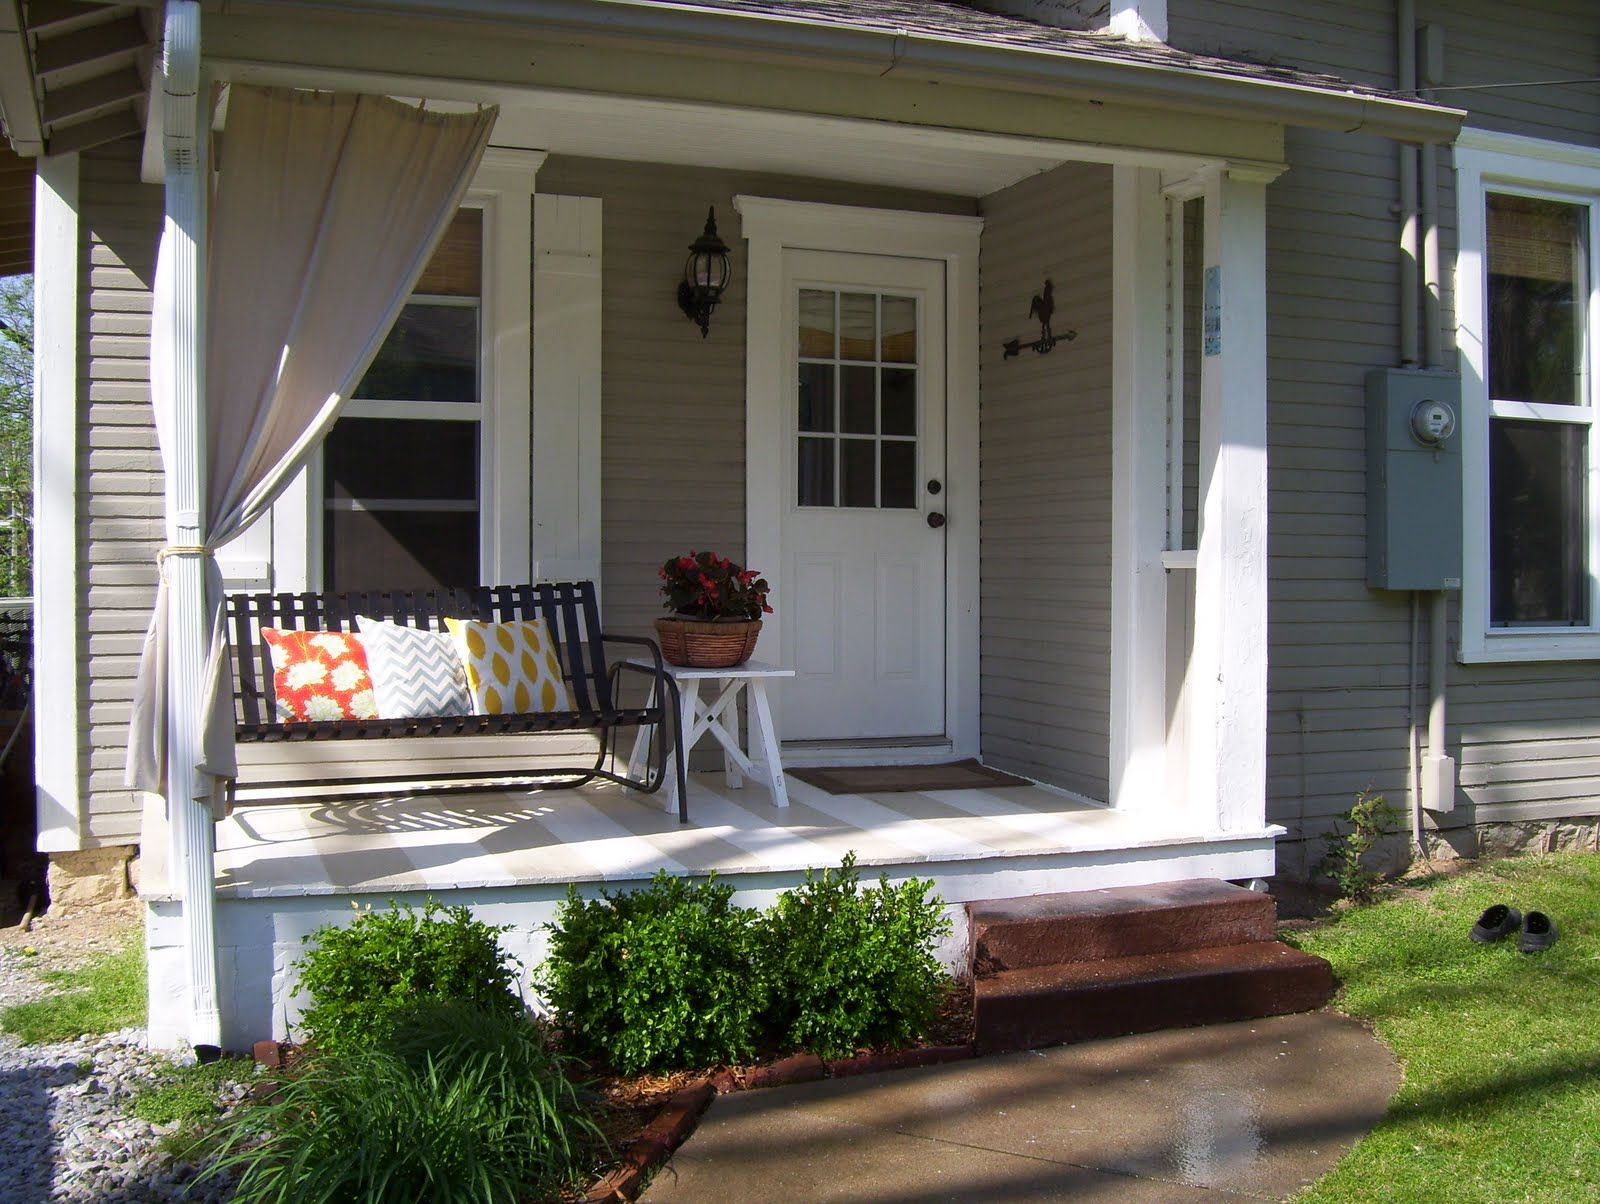 Ordinary Porch Ideas For Small Homes Part - 2: Sweet House Design Exterior Front Porch Ideas For Small Houses With Iron  Banister Stairs Added Concrete